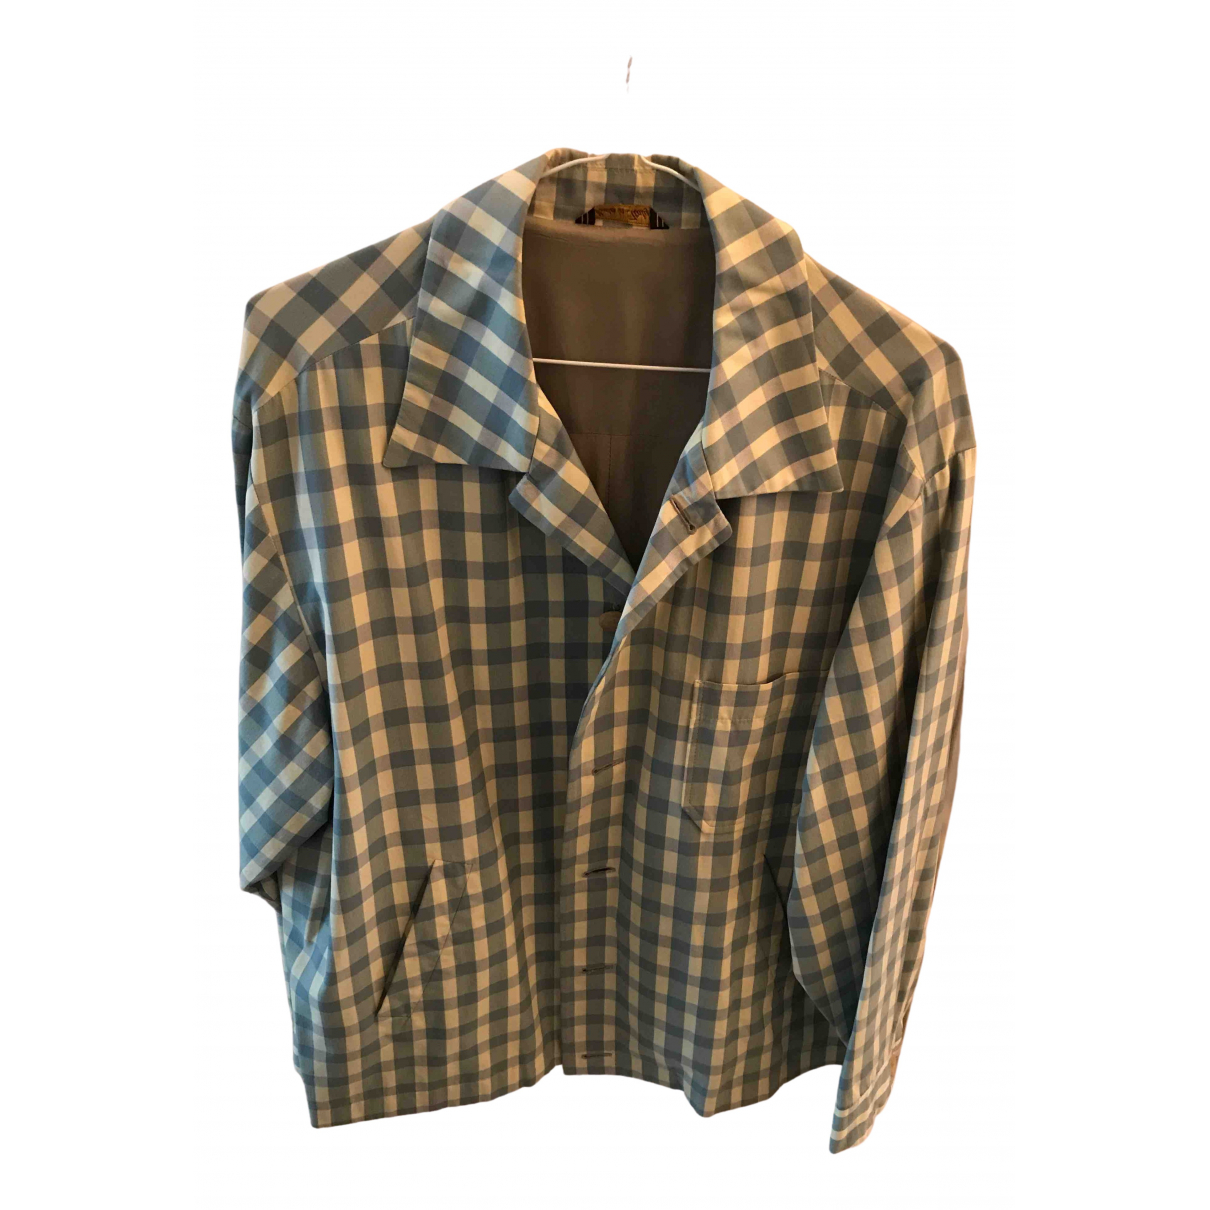 Nicole Farhi \N Blue Cotton jacket  for Men M International